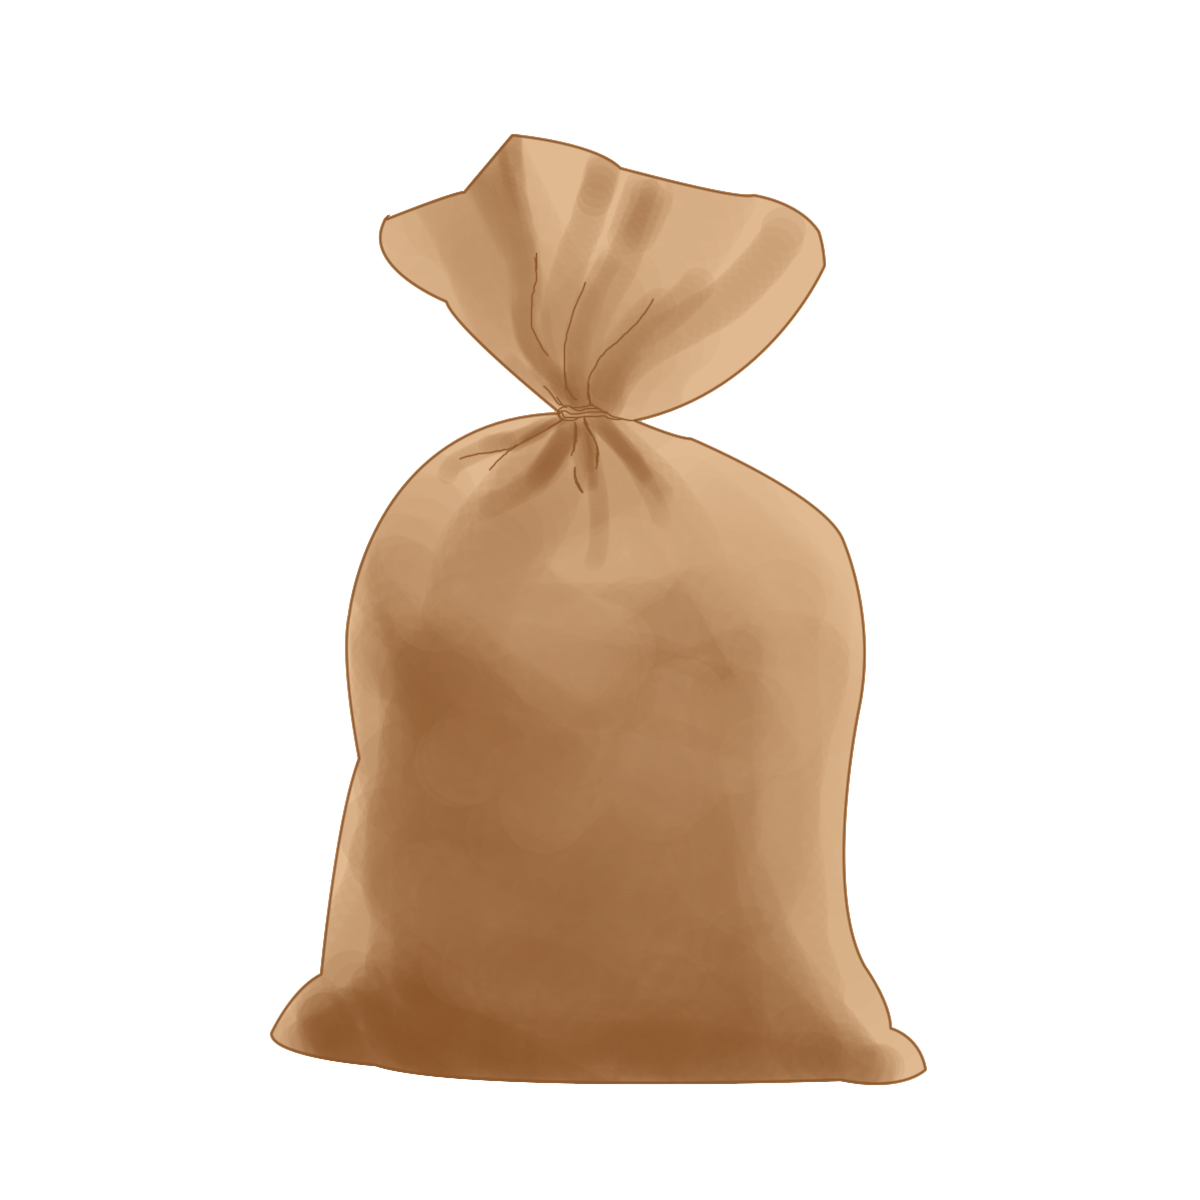 Free Sack Cliparts, Download Free Clip Art, Free Clip Art on.